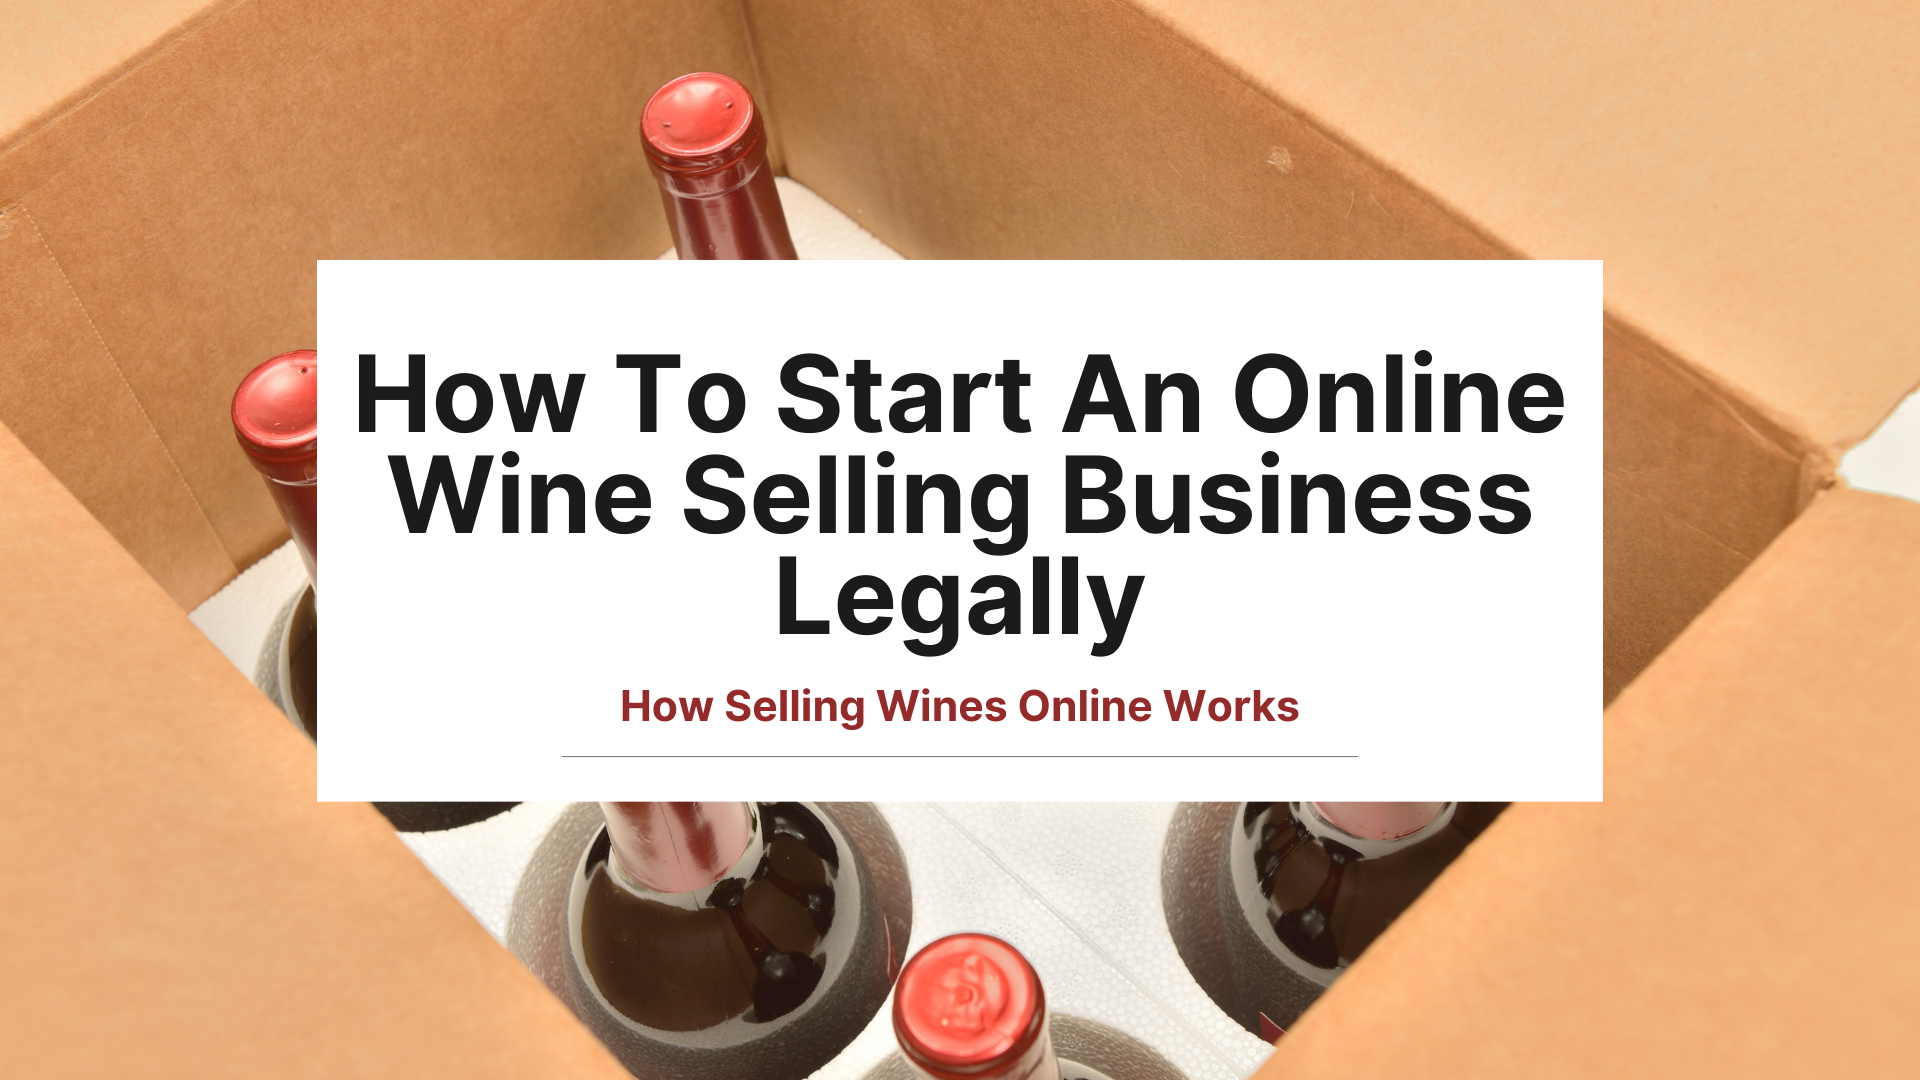 How To Start An Online Wine Selling Business Legally